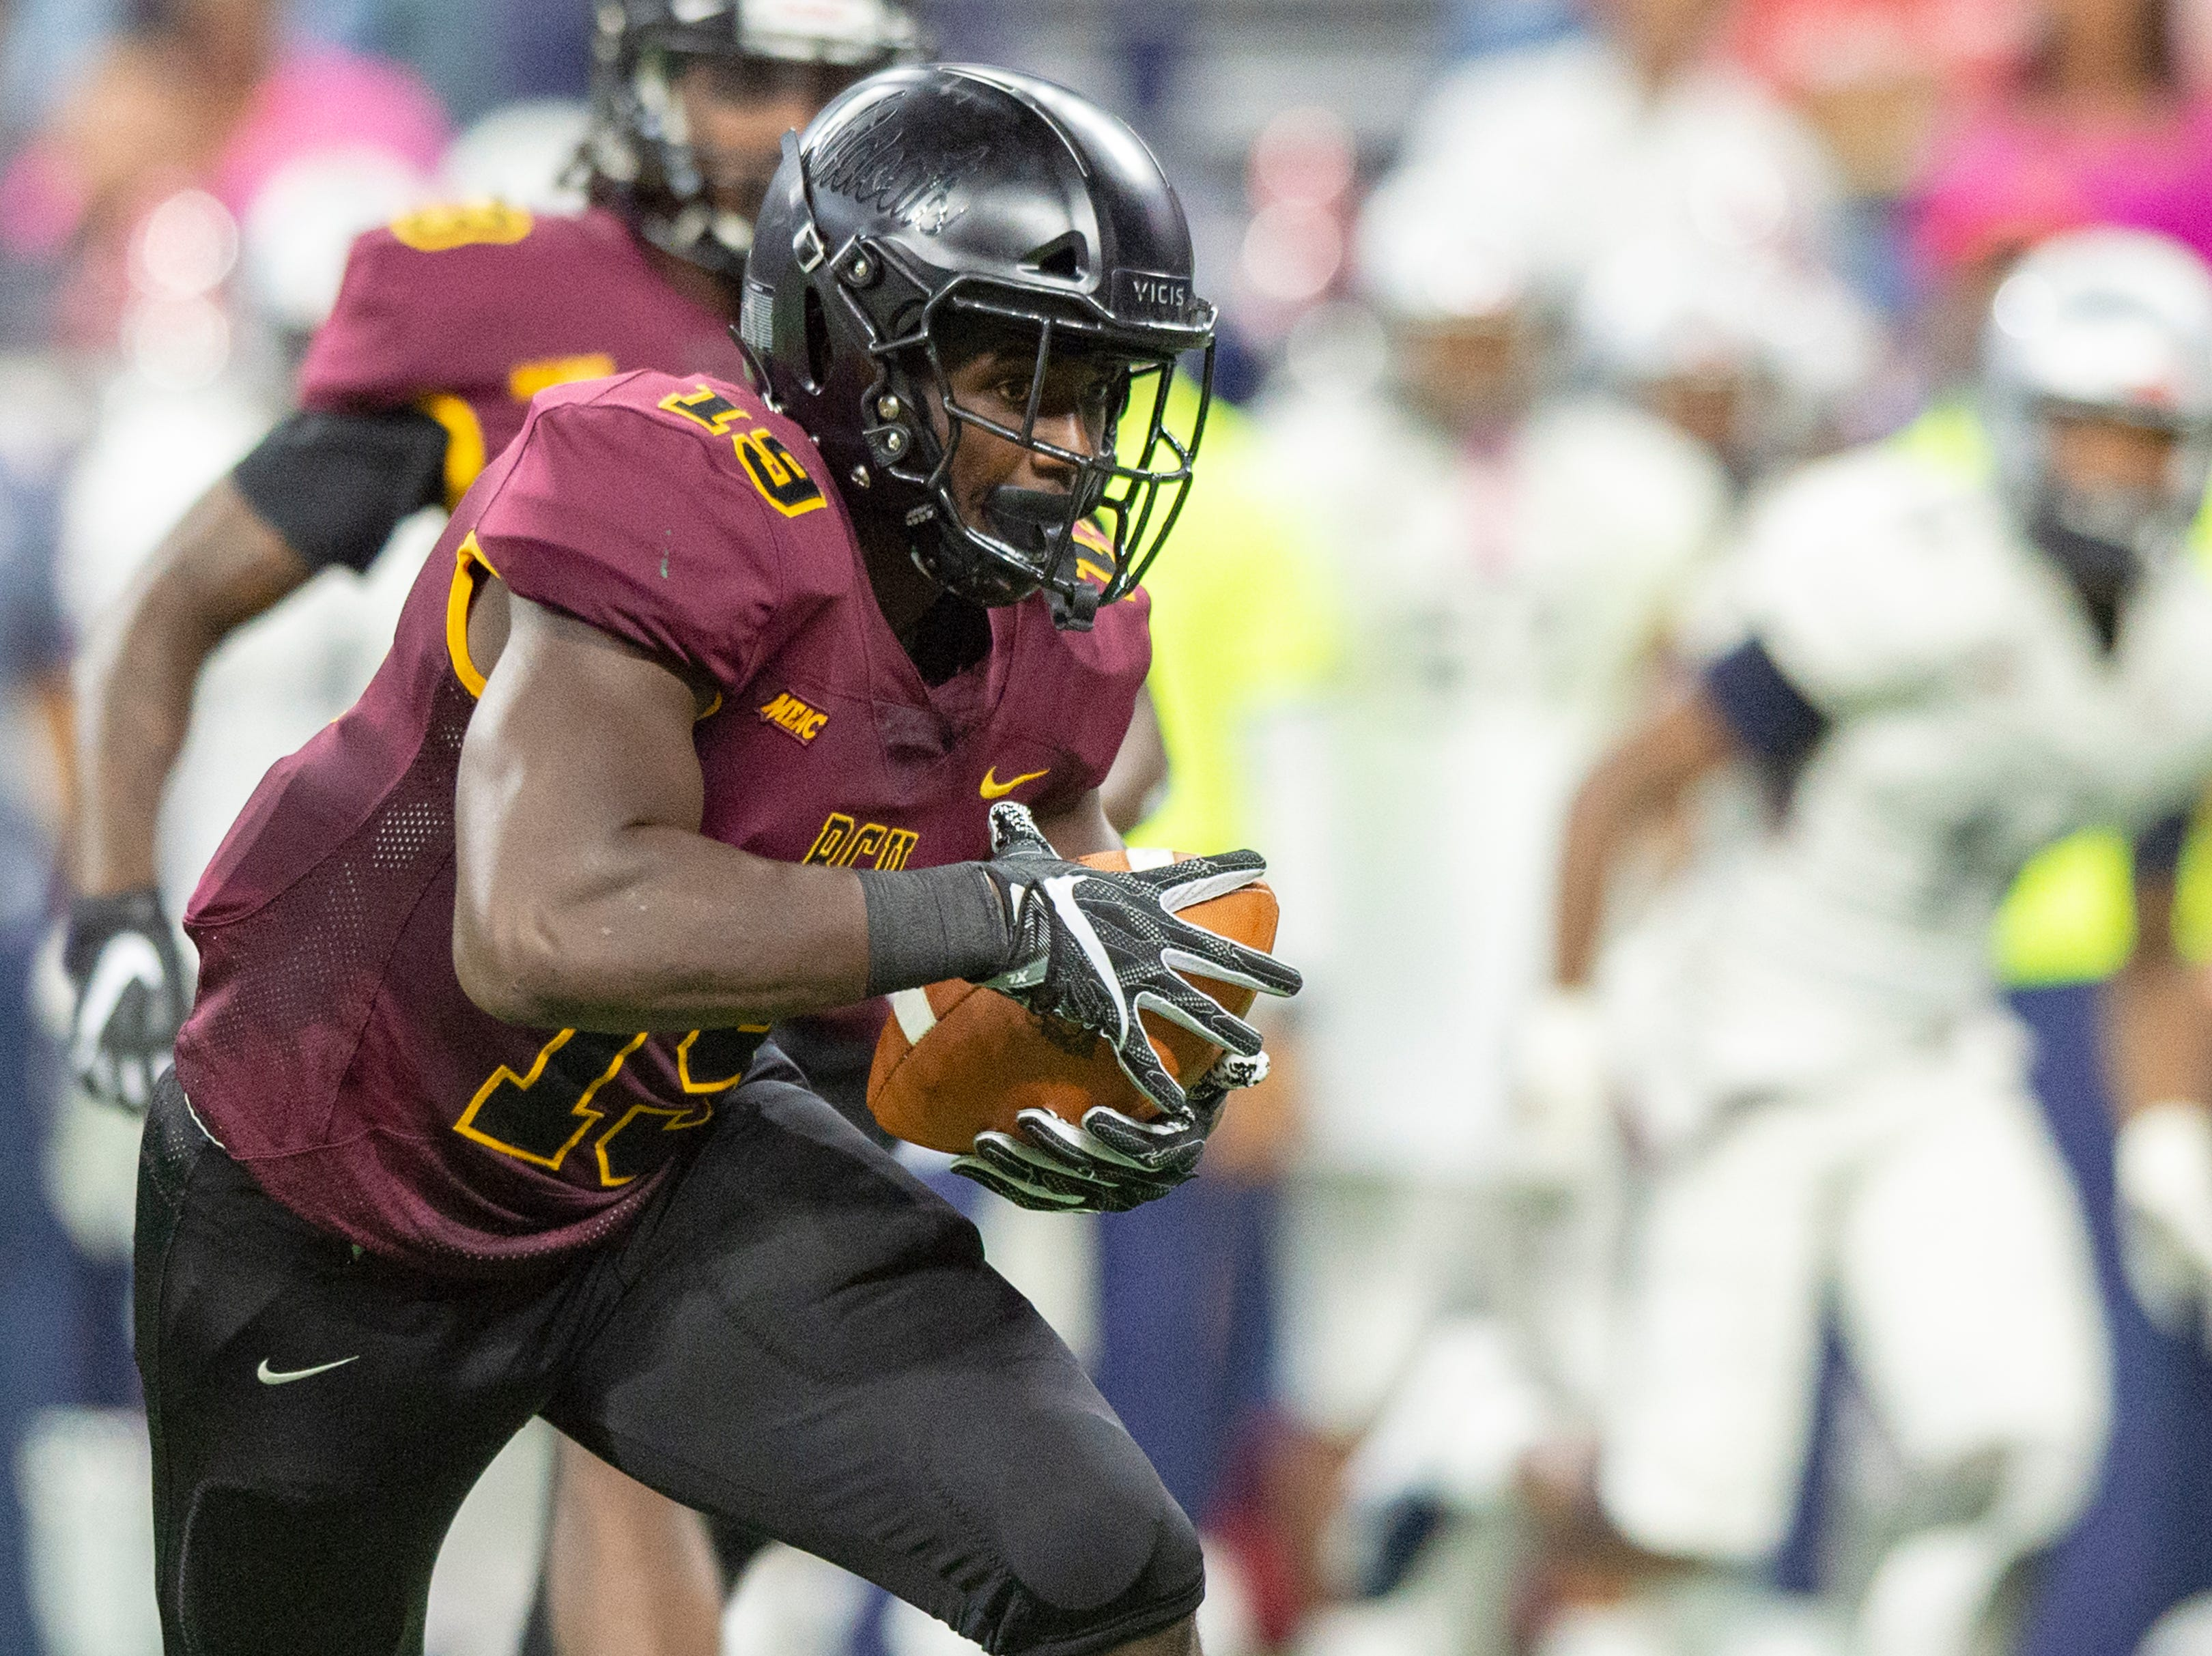 Bethune Cookman Wildcats linebacker Marquis Hendrix (19) pulls in an interception off of a tipped pass during the first half of action. Howard Bison took on Bethune Cookman Wildcats in the Circle City Classic game, Saturday, Sept. 22, 2018, at Lucas Oil Stadium.